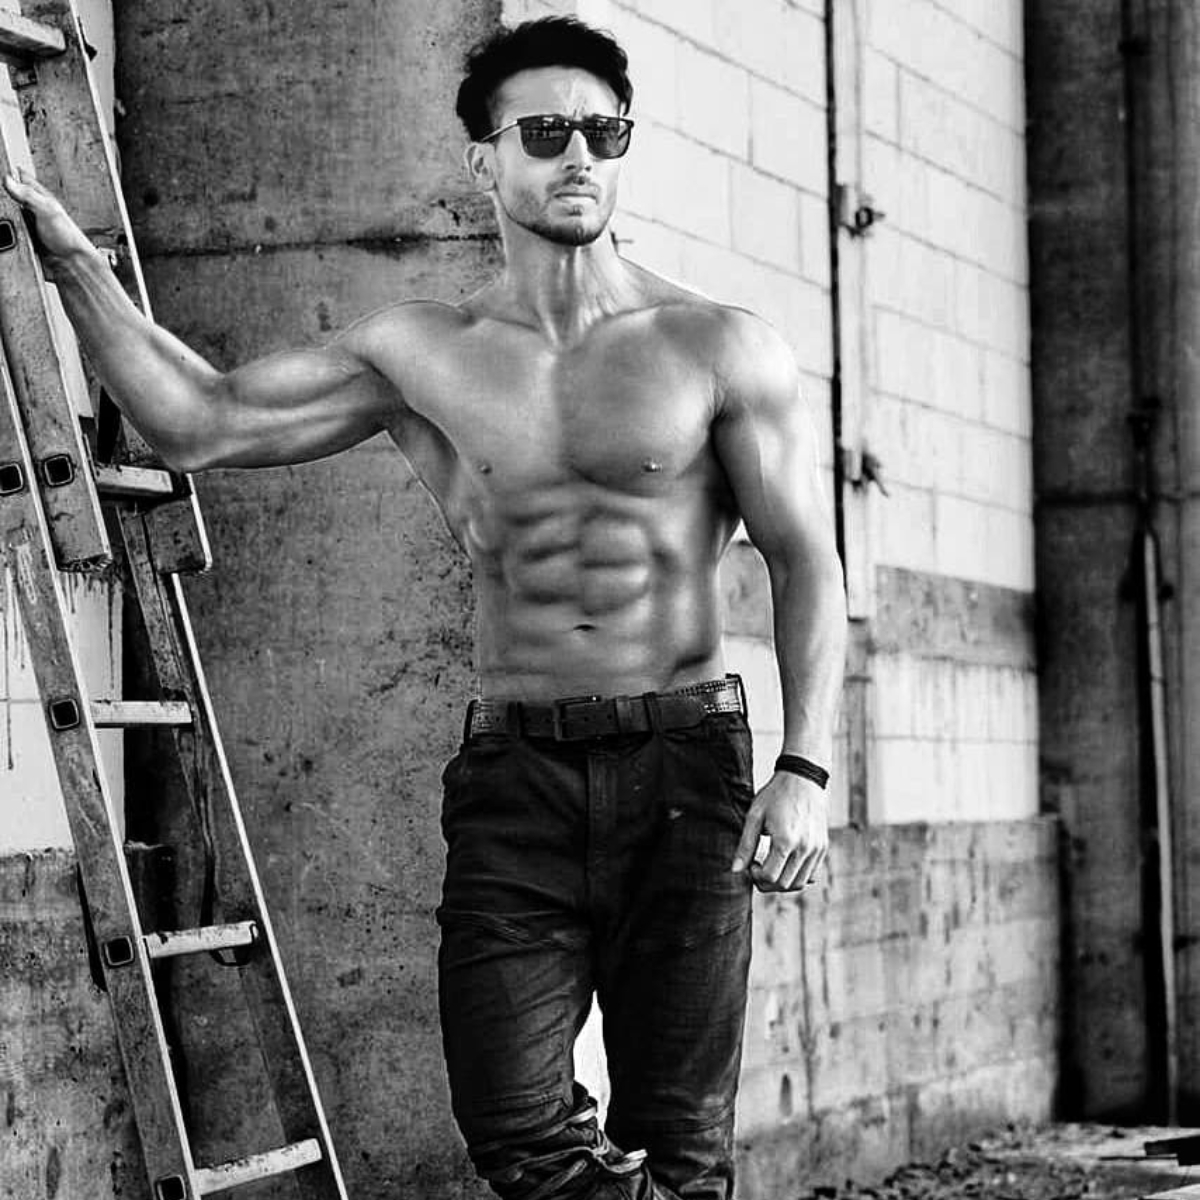 Baaghi 3: Tiger Shroff shows off his well toned abs in the chilly weather of Serbia